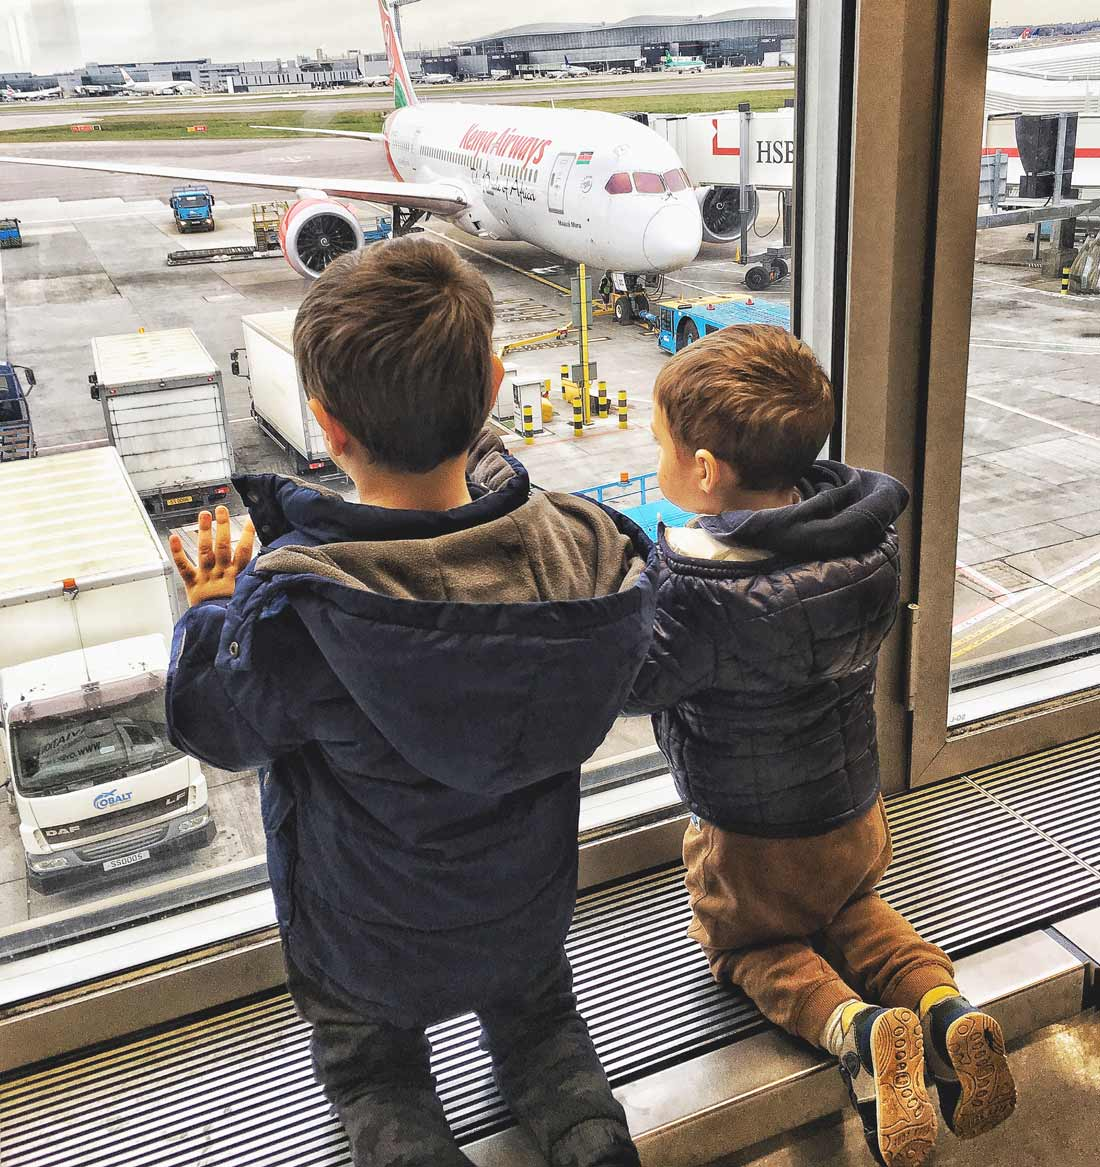 Strategies and tips how to enjoy Air travel with kids - Mum what else